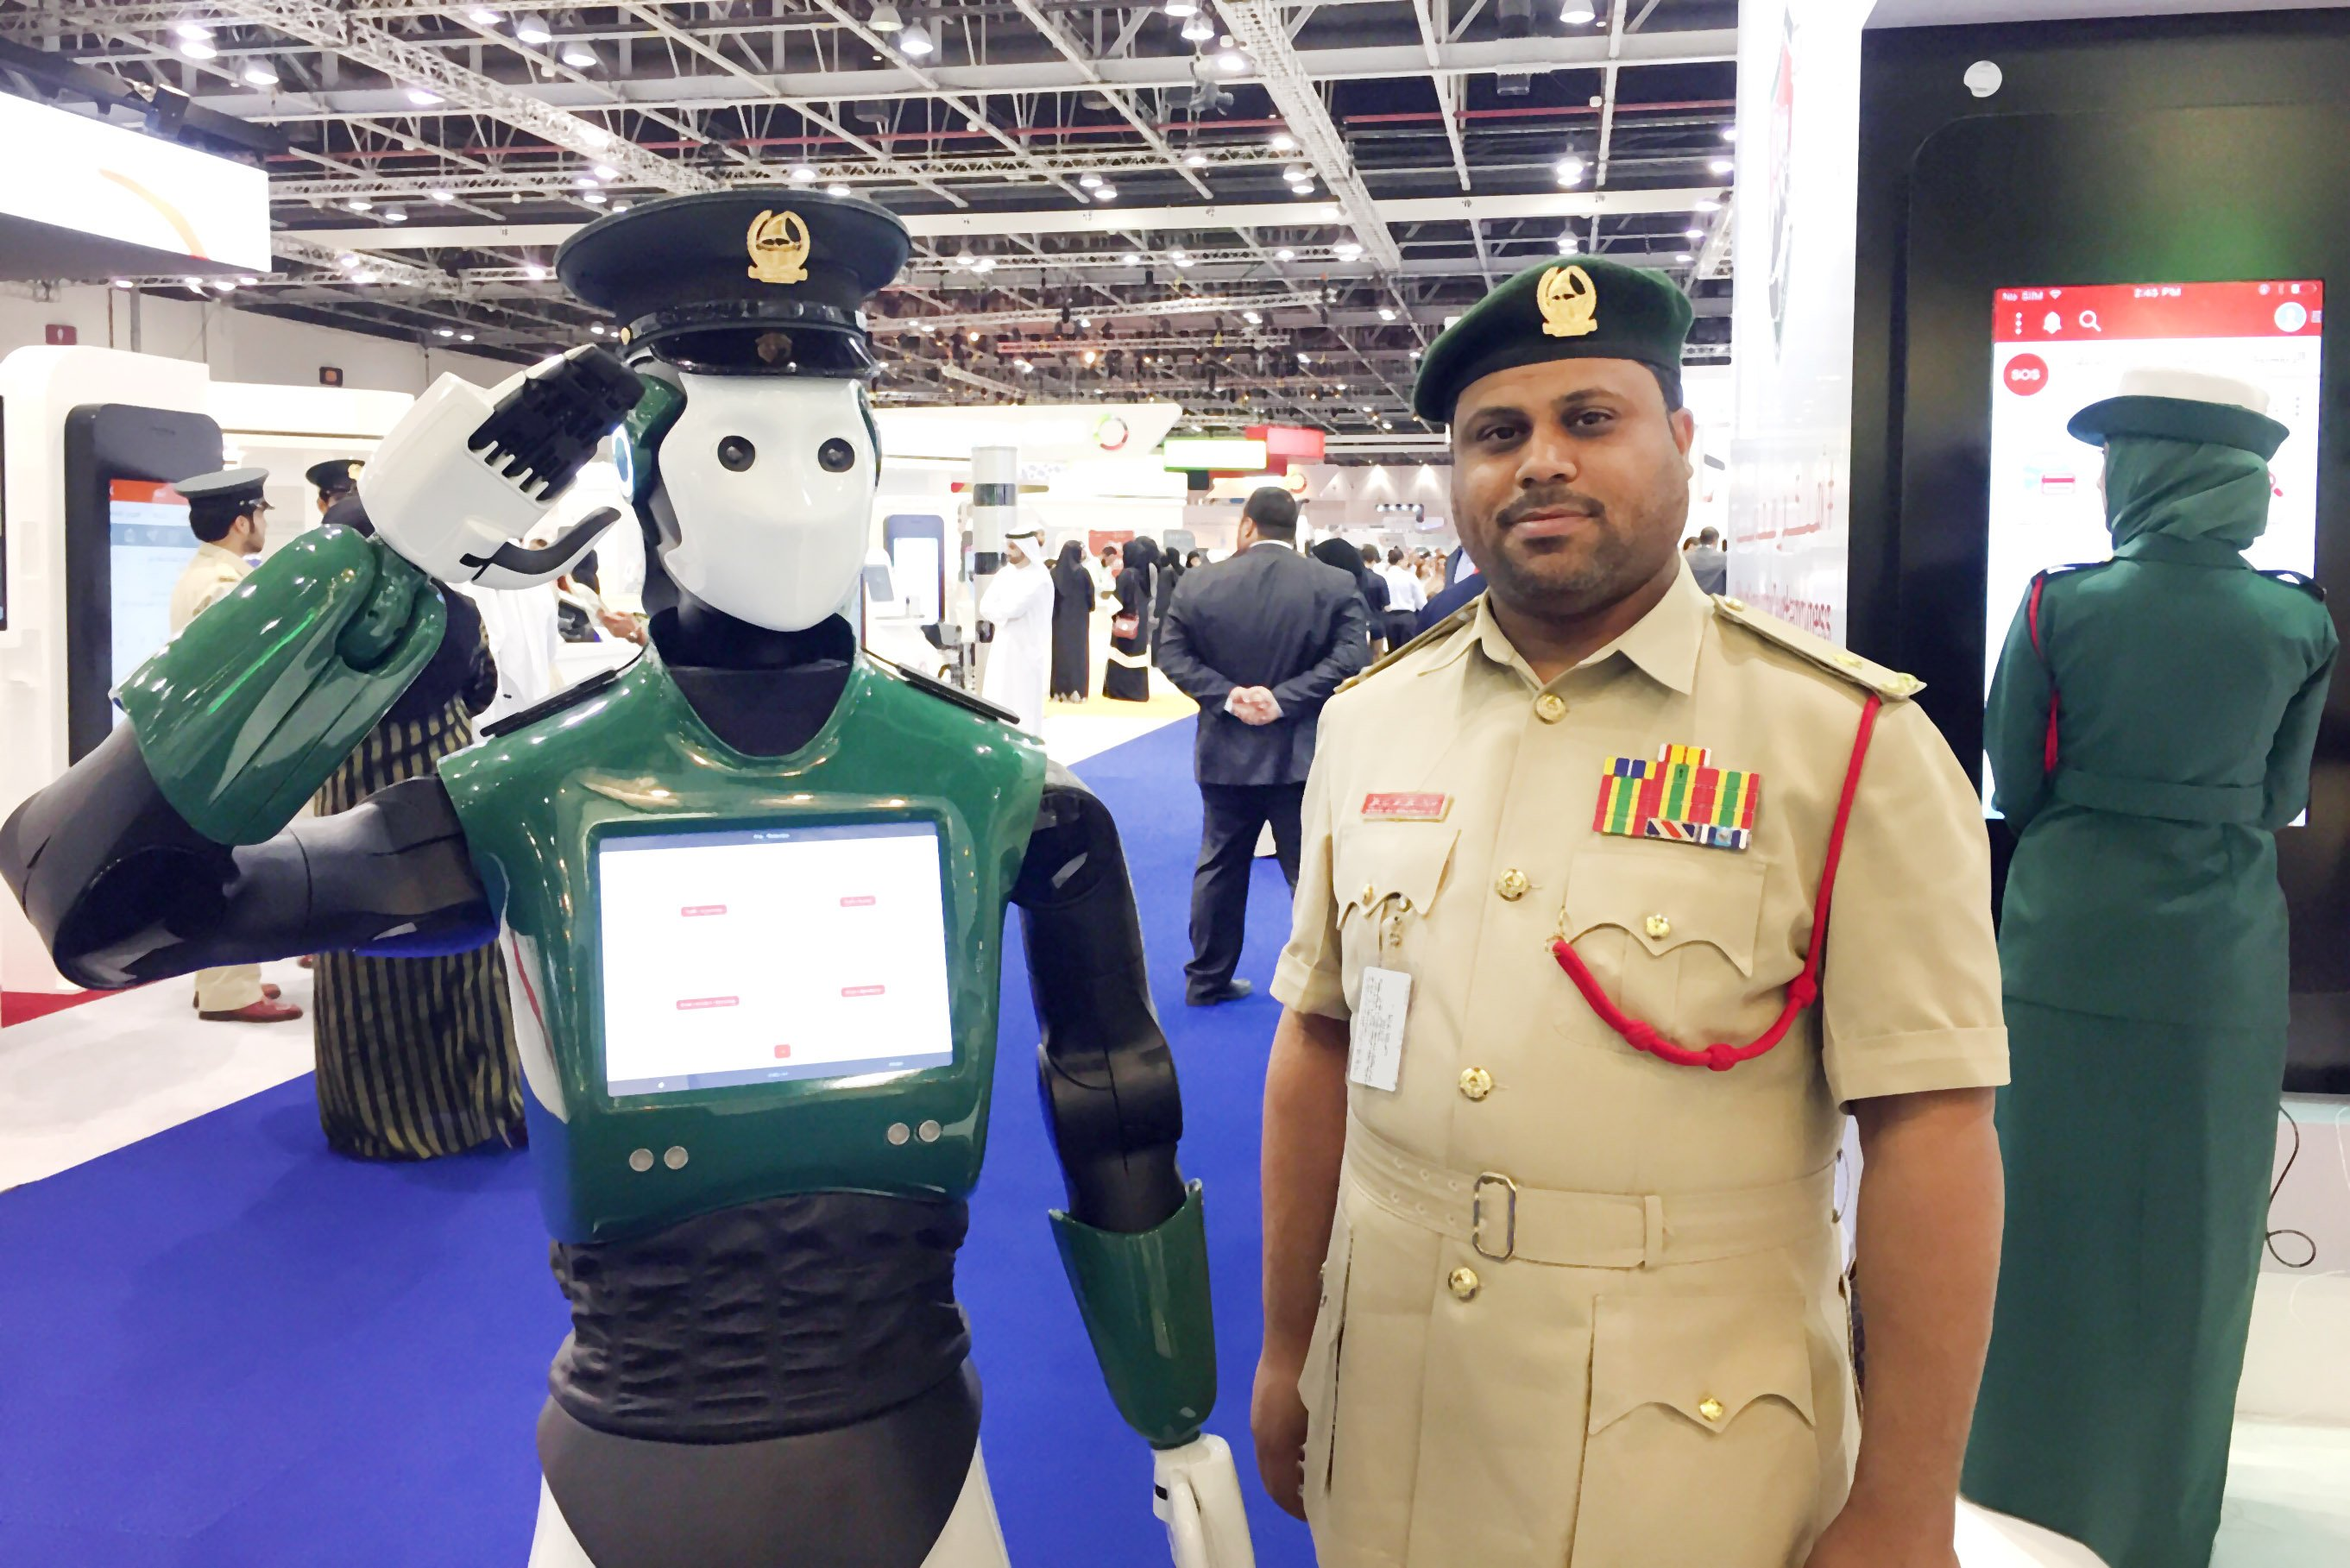 Dubai Police plans use of robots and artificial intelligence by 2020